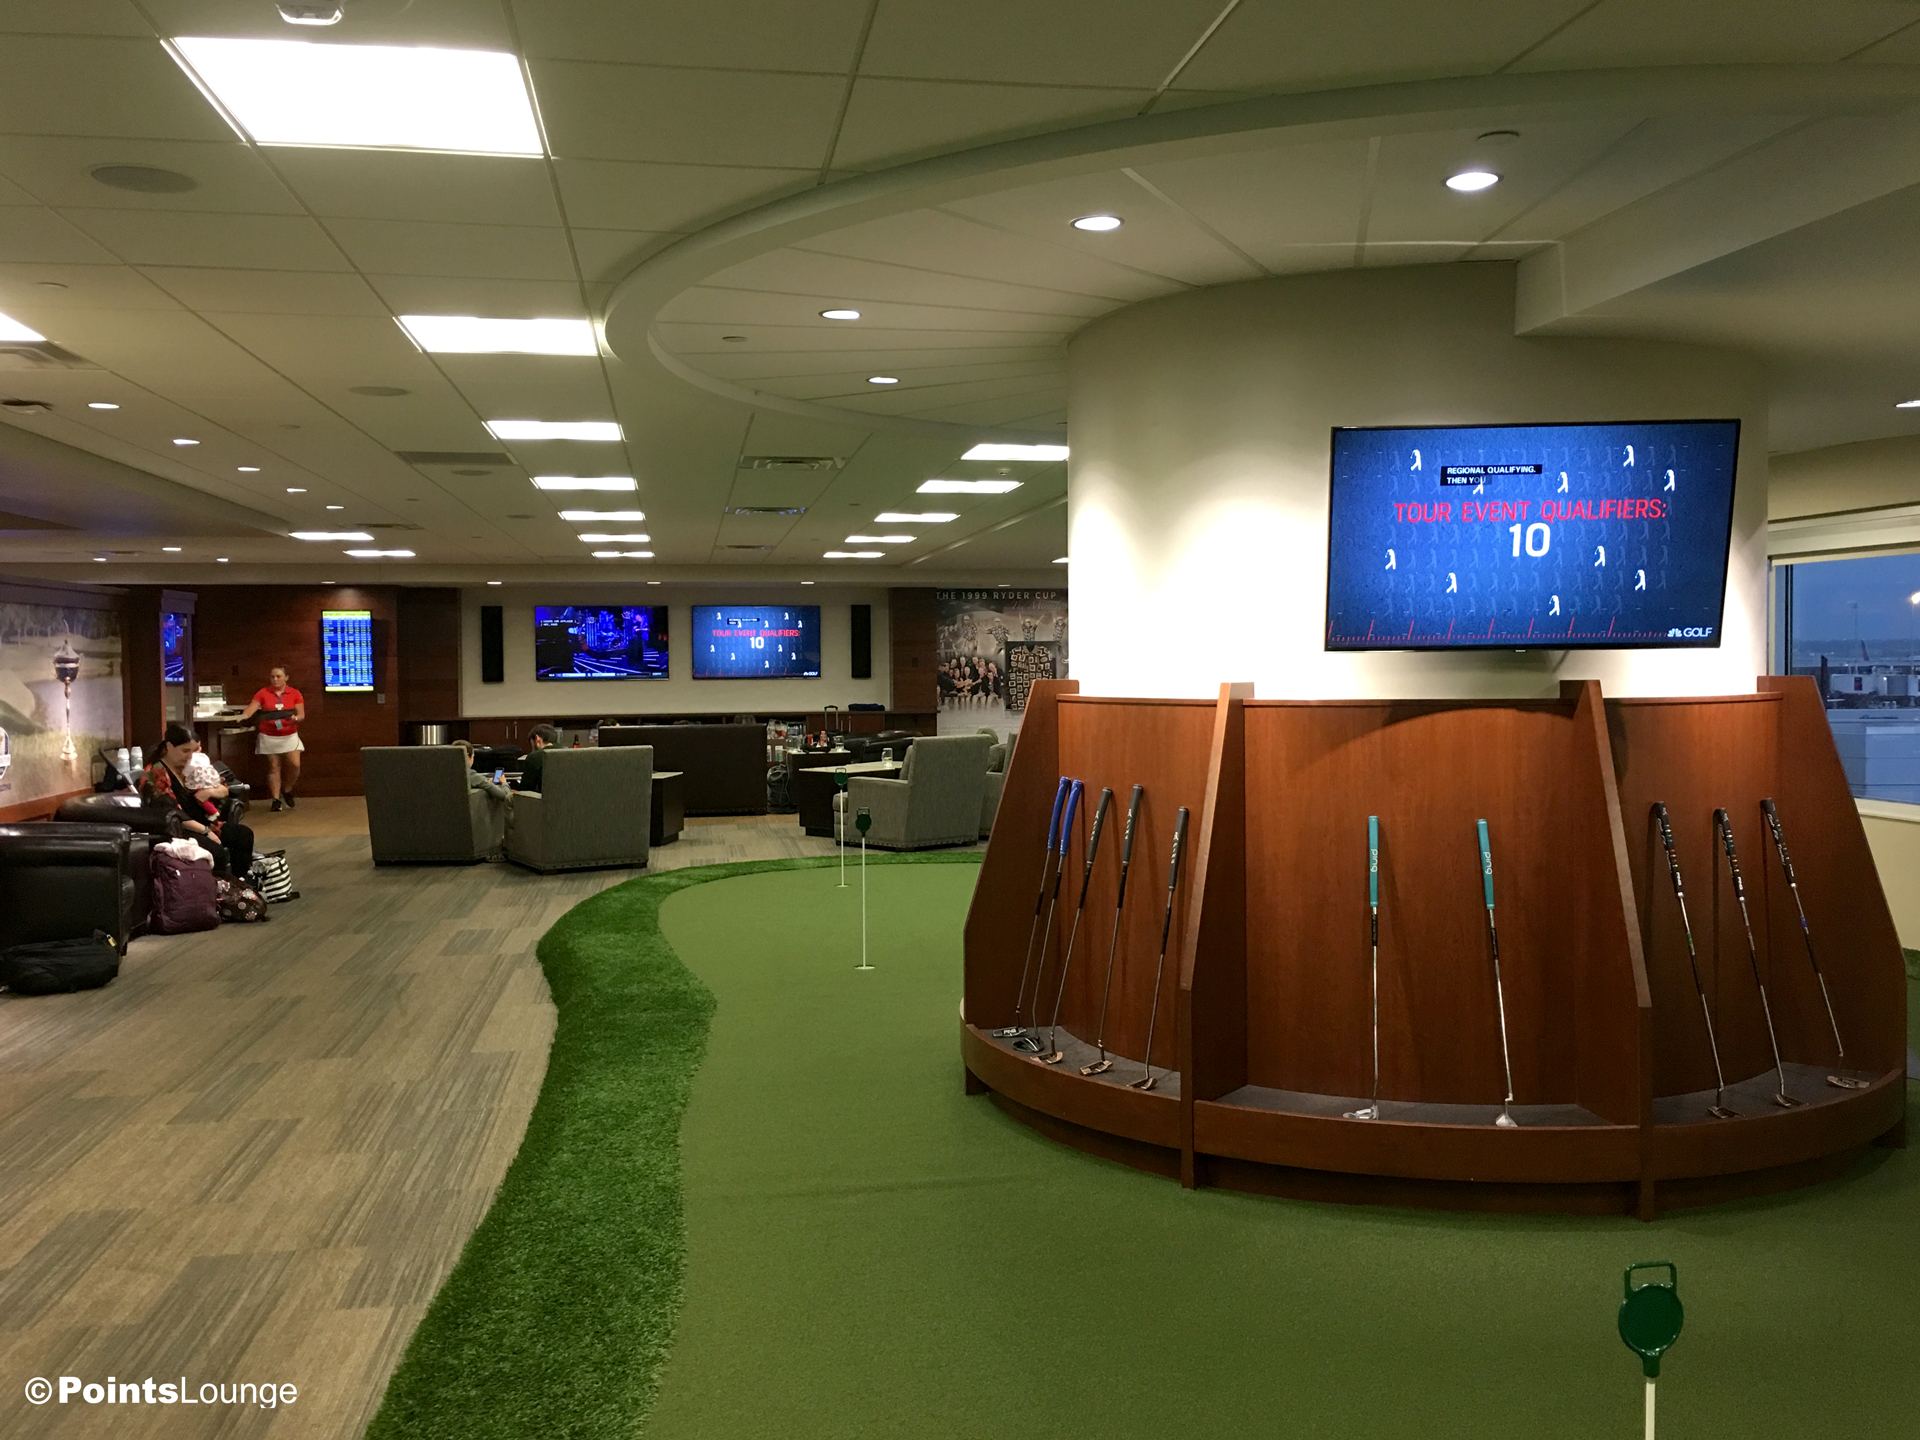 A putting green and putters are seen inside PGA MSP golf-themed airport lounge at the Minneapolis-St. Paul International Airport. One of the ways the lounge can be accessed is with Priority Pass membership. (Click for a larger image.)